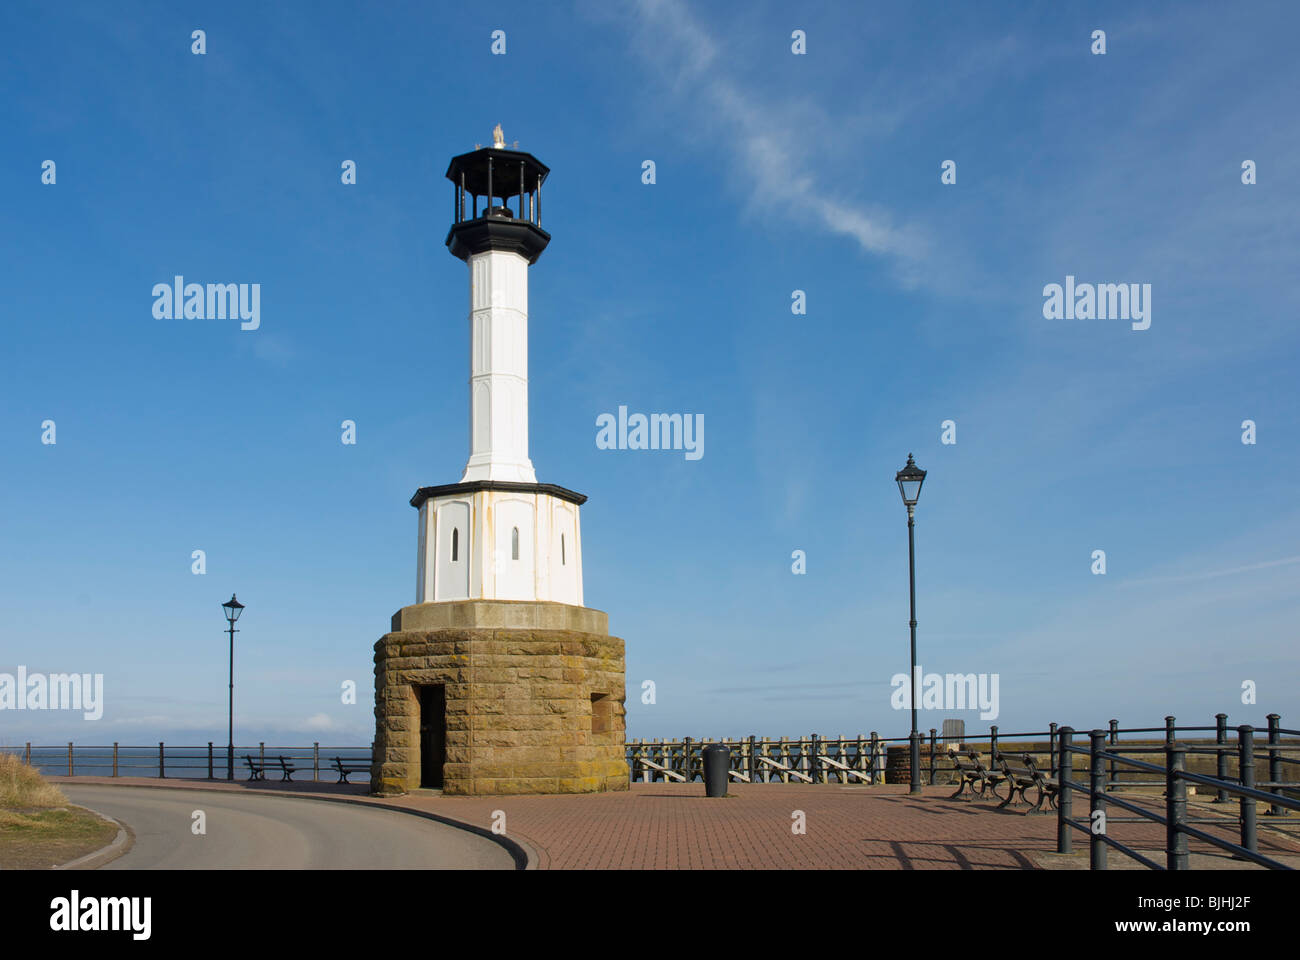 Lighthouse on the quay at Maryport, West Cumbria, England UK - Stock Image